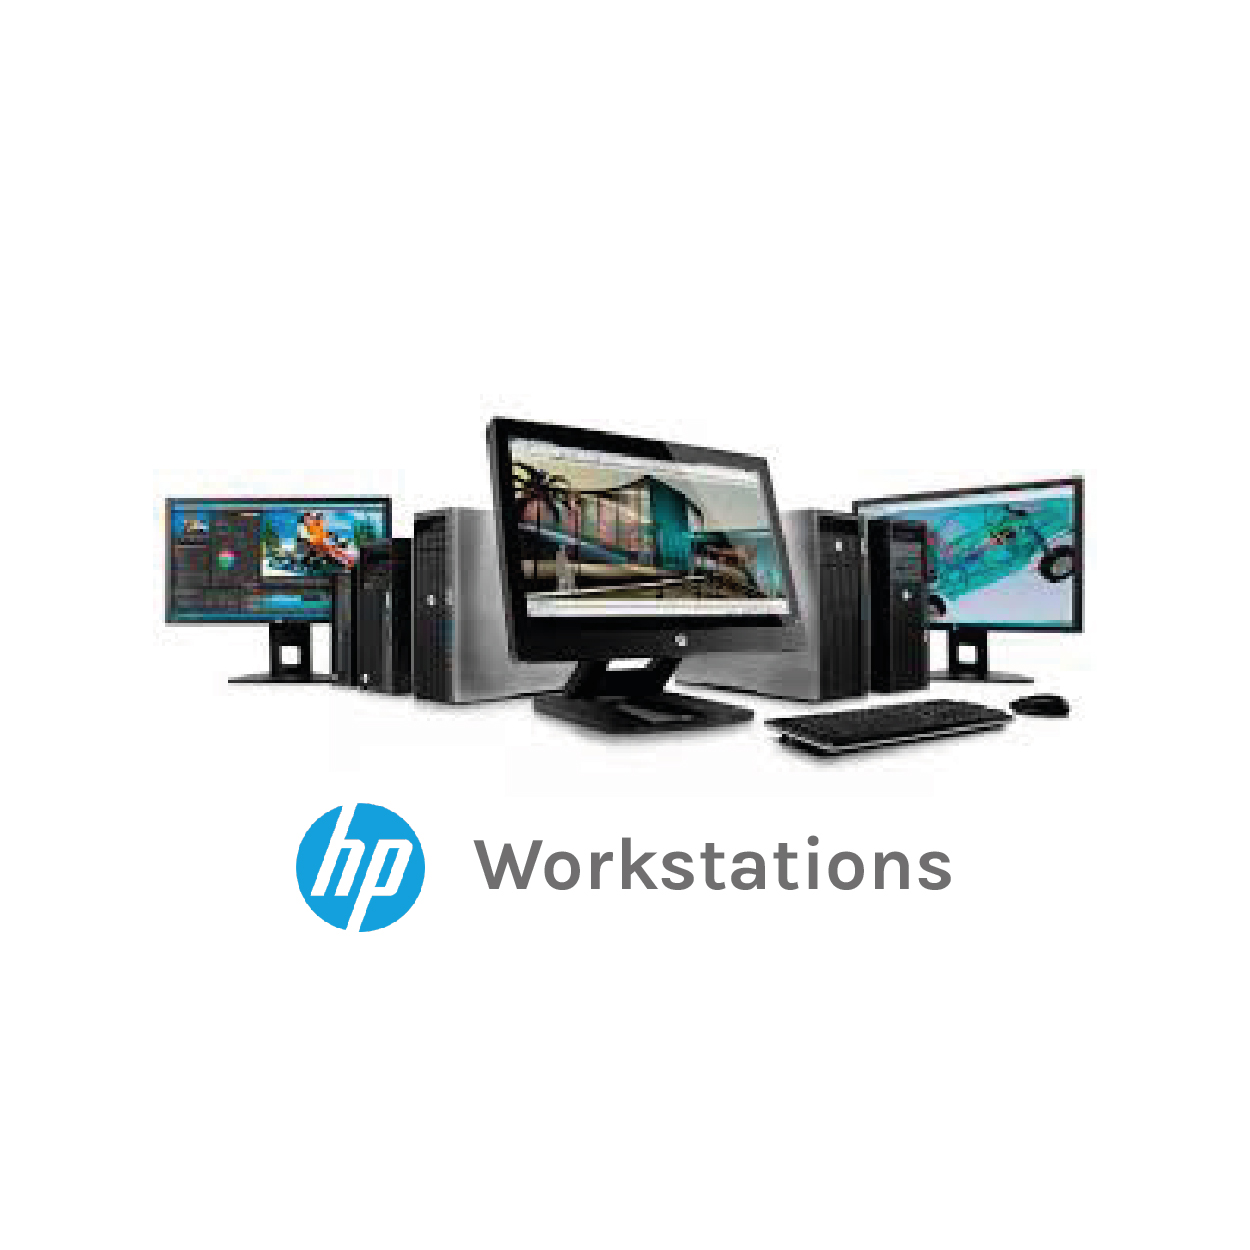 workstations_hp-01.jpg